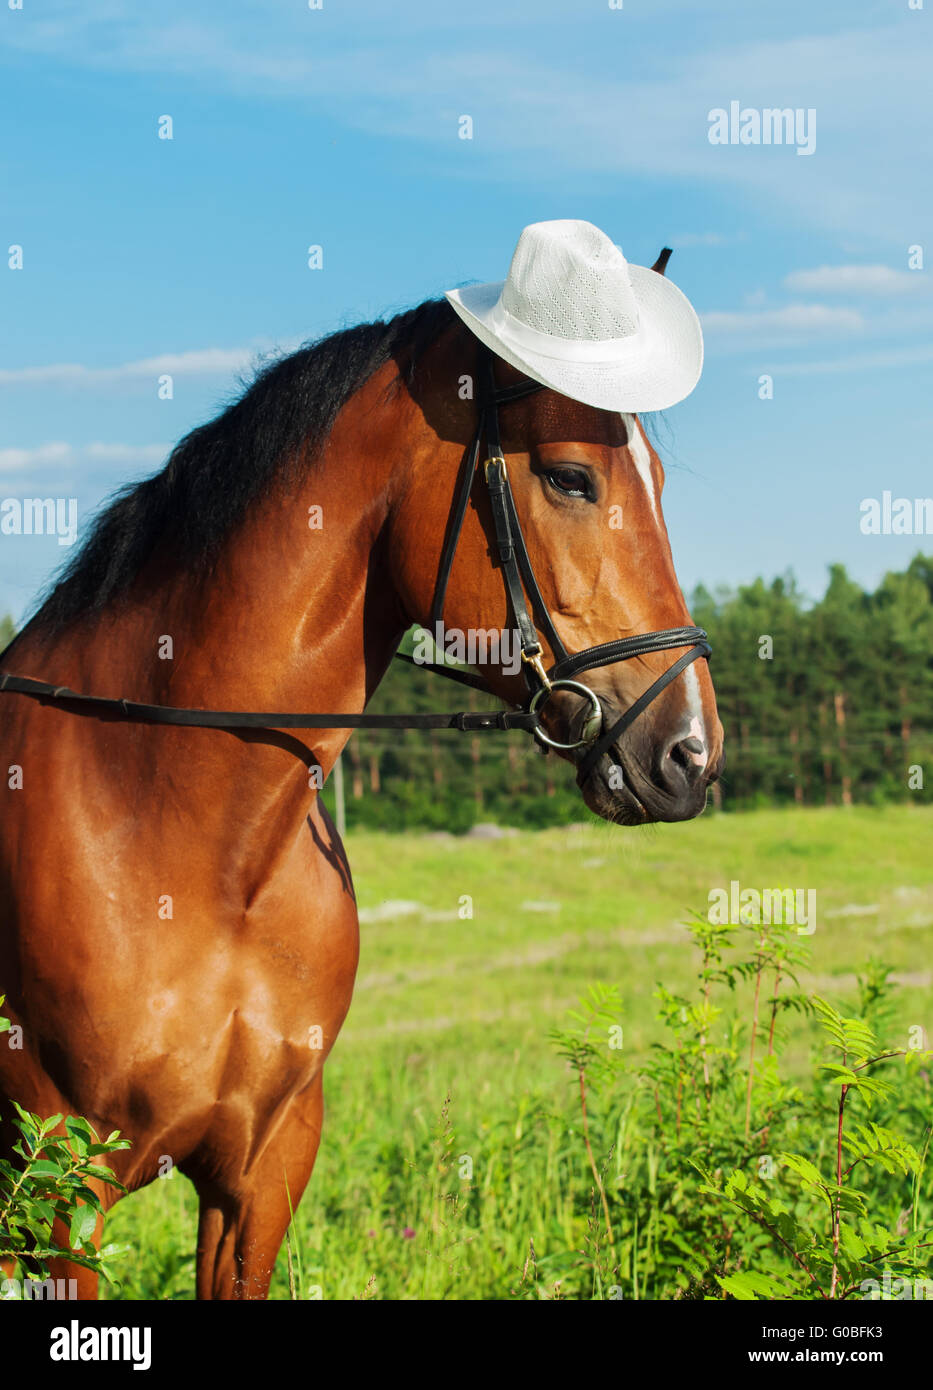 portrait of bay horse with hat - Stock Image